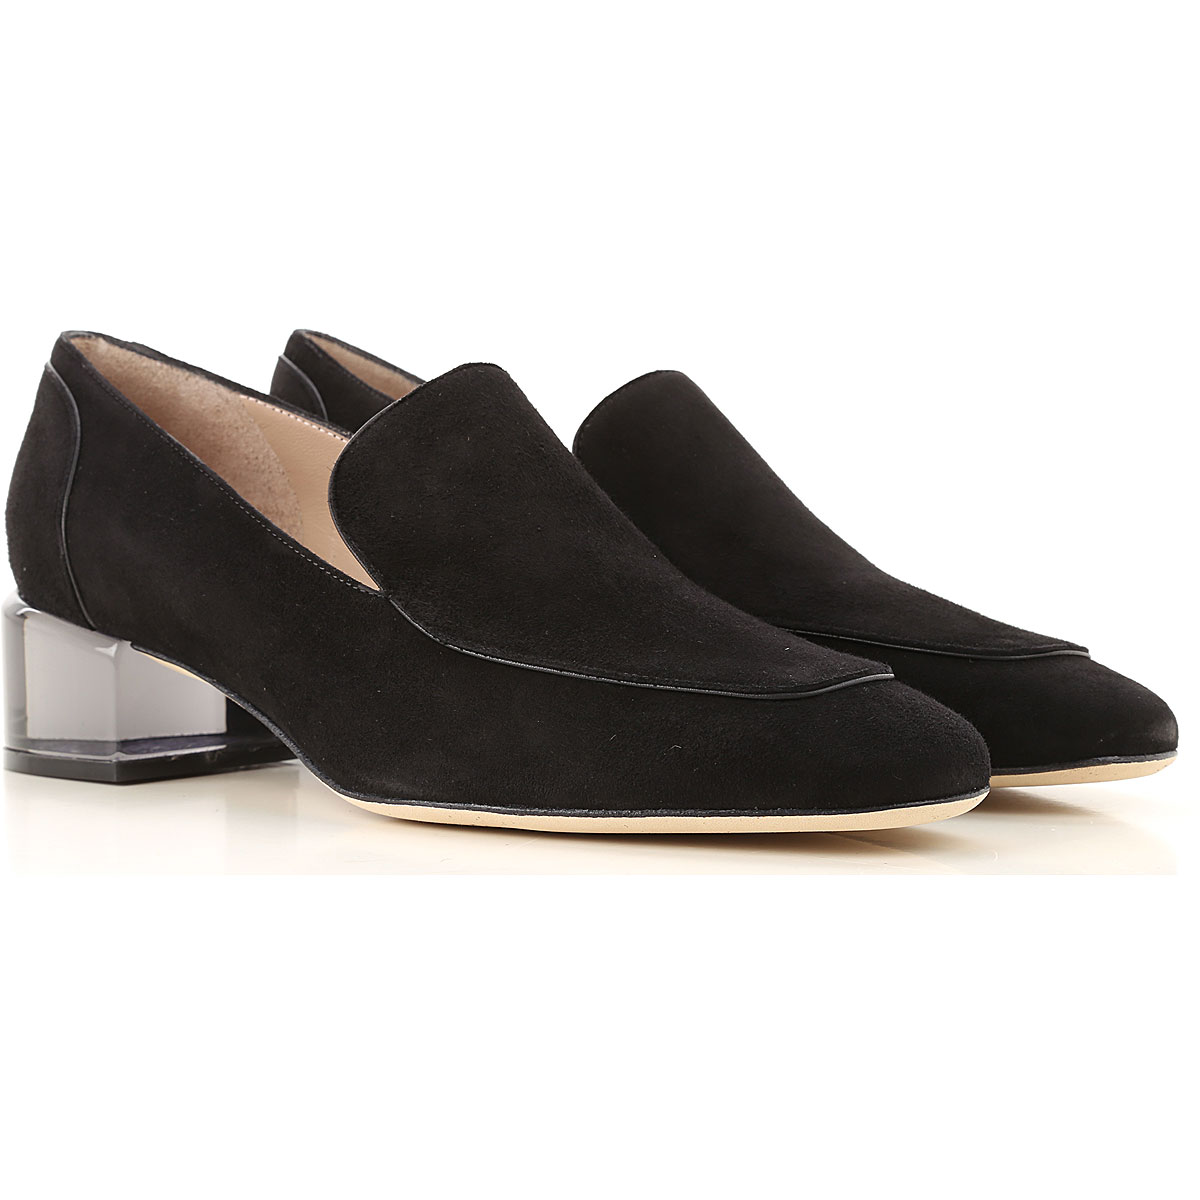 Stuart Weitzman Loafers for Women Black SE - GOOFASH